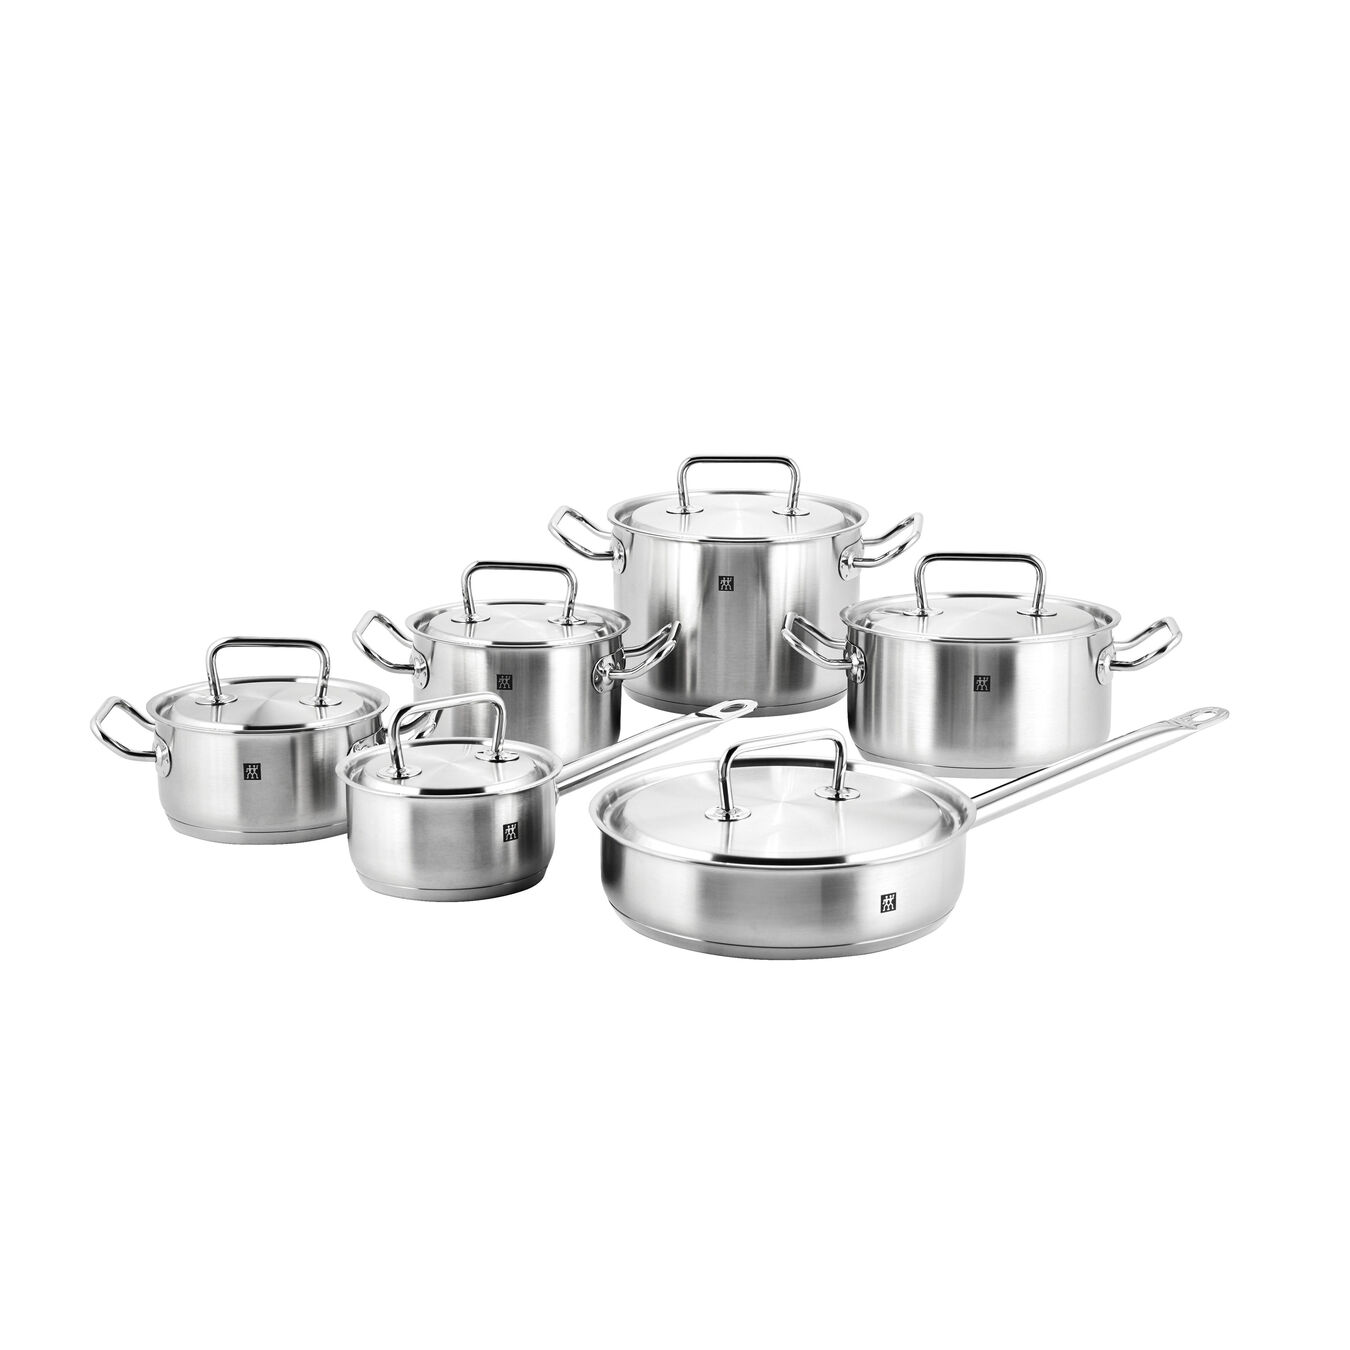 12-pcs 18/10 Stainless Steel Set de casseroles et de poêles,,large 1